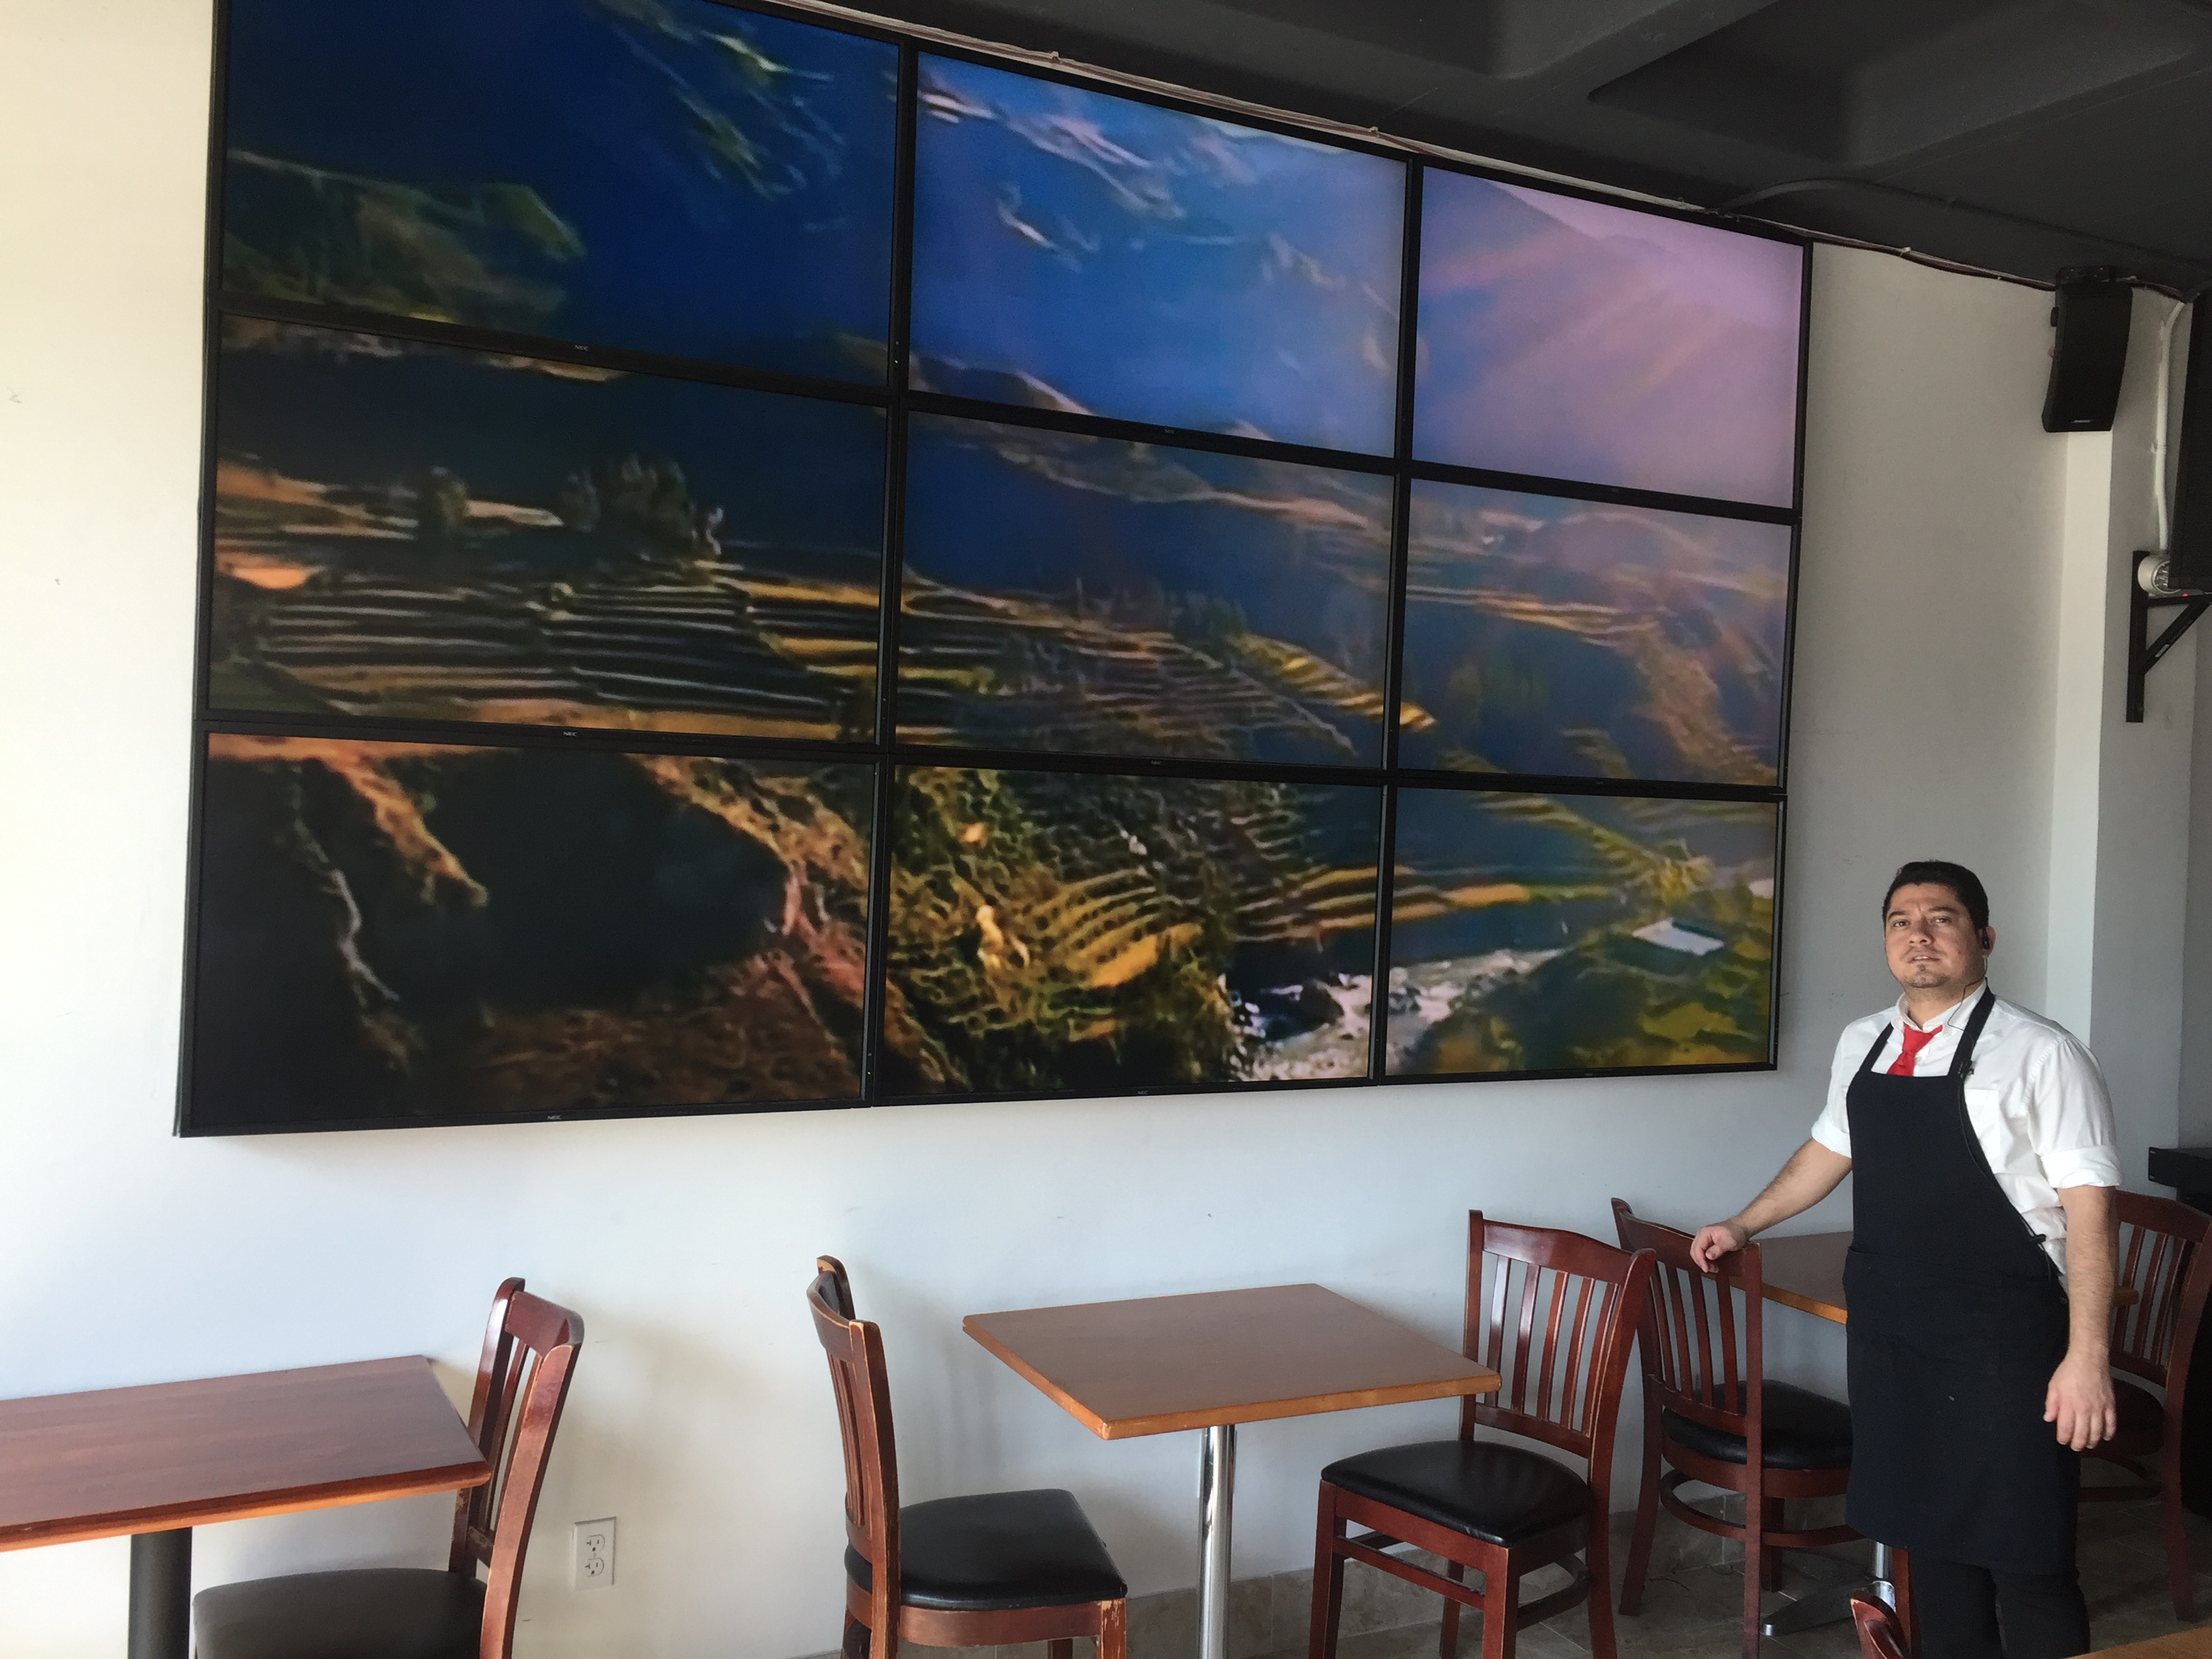 Video Wall by Kayros Pro